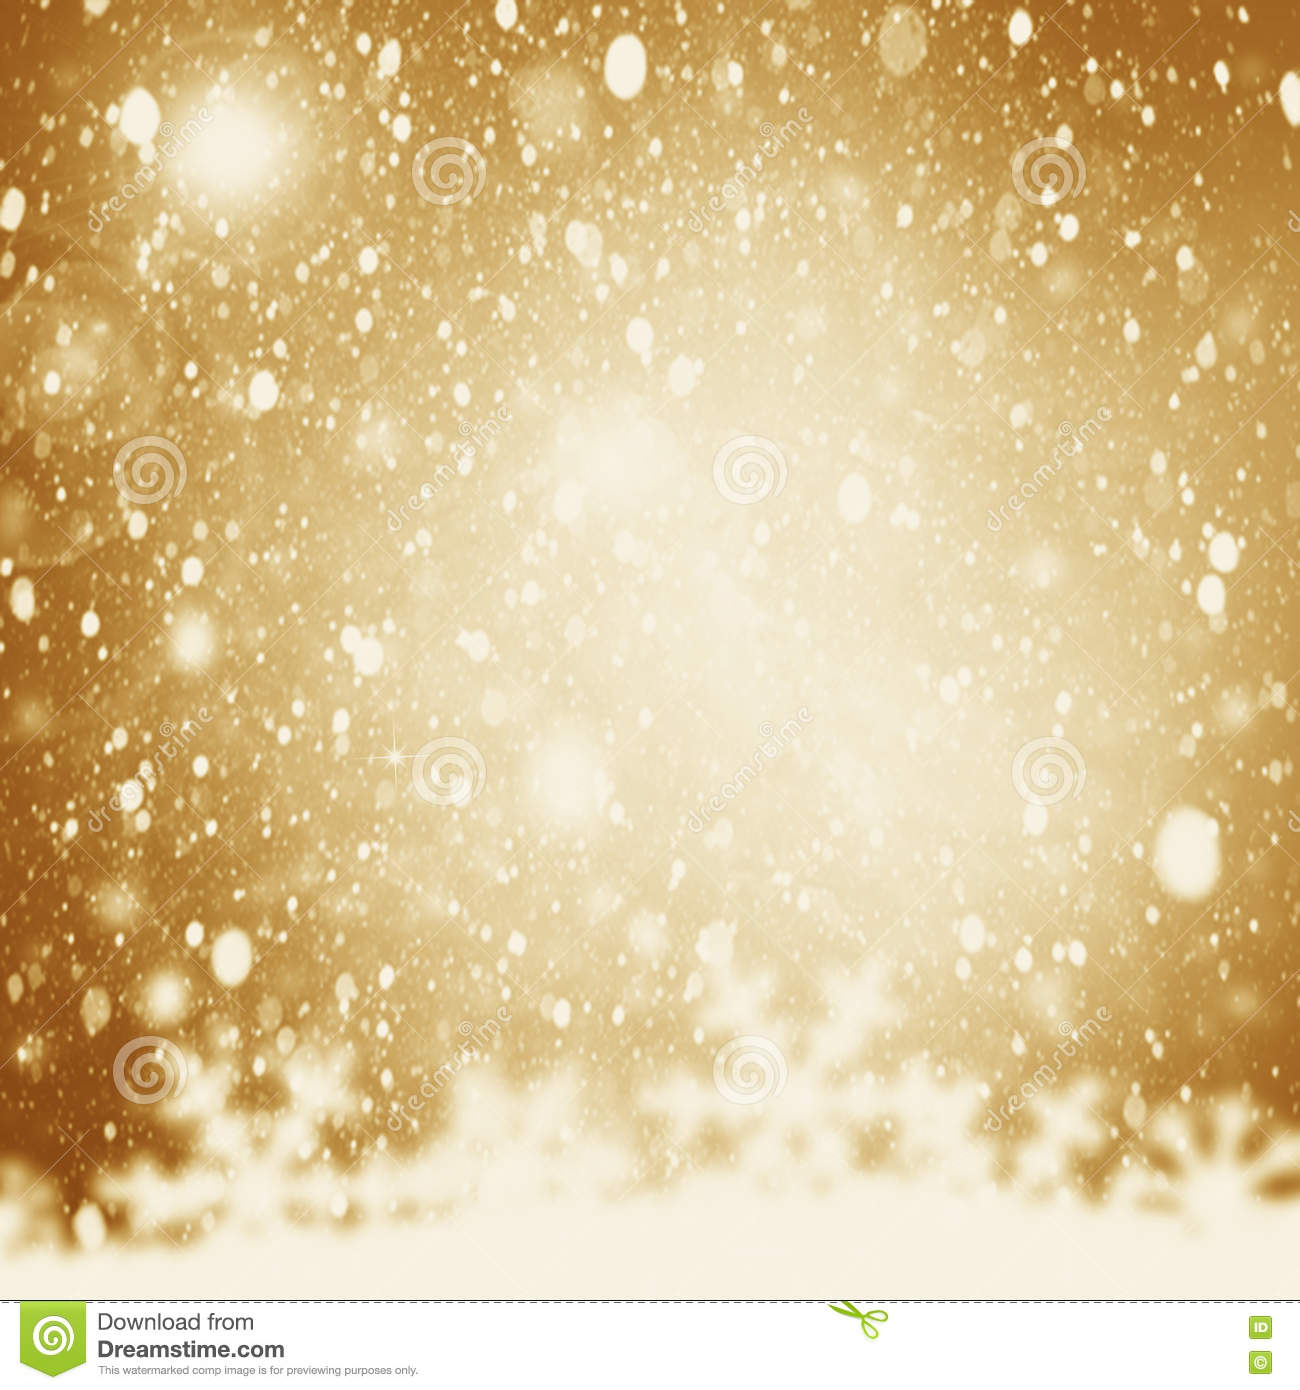 Christmas Background Images Gold.Christmas Background Golden Holiday Abstract Glitter